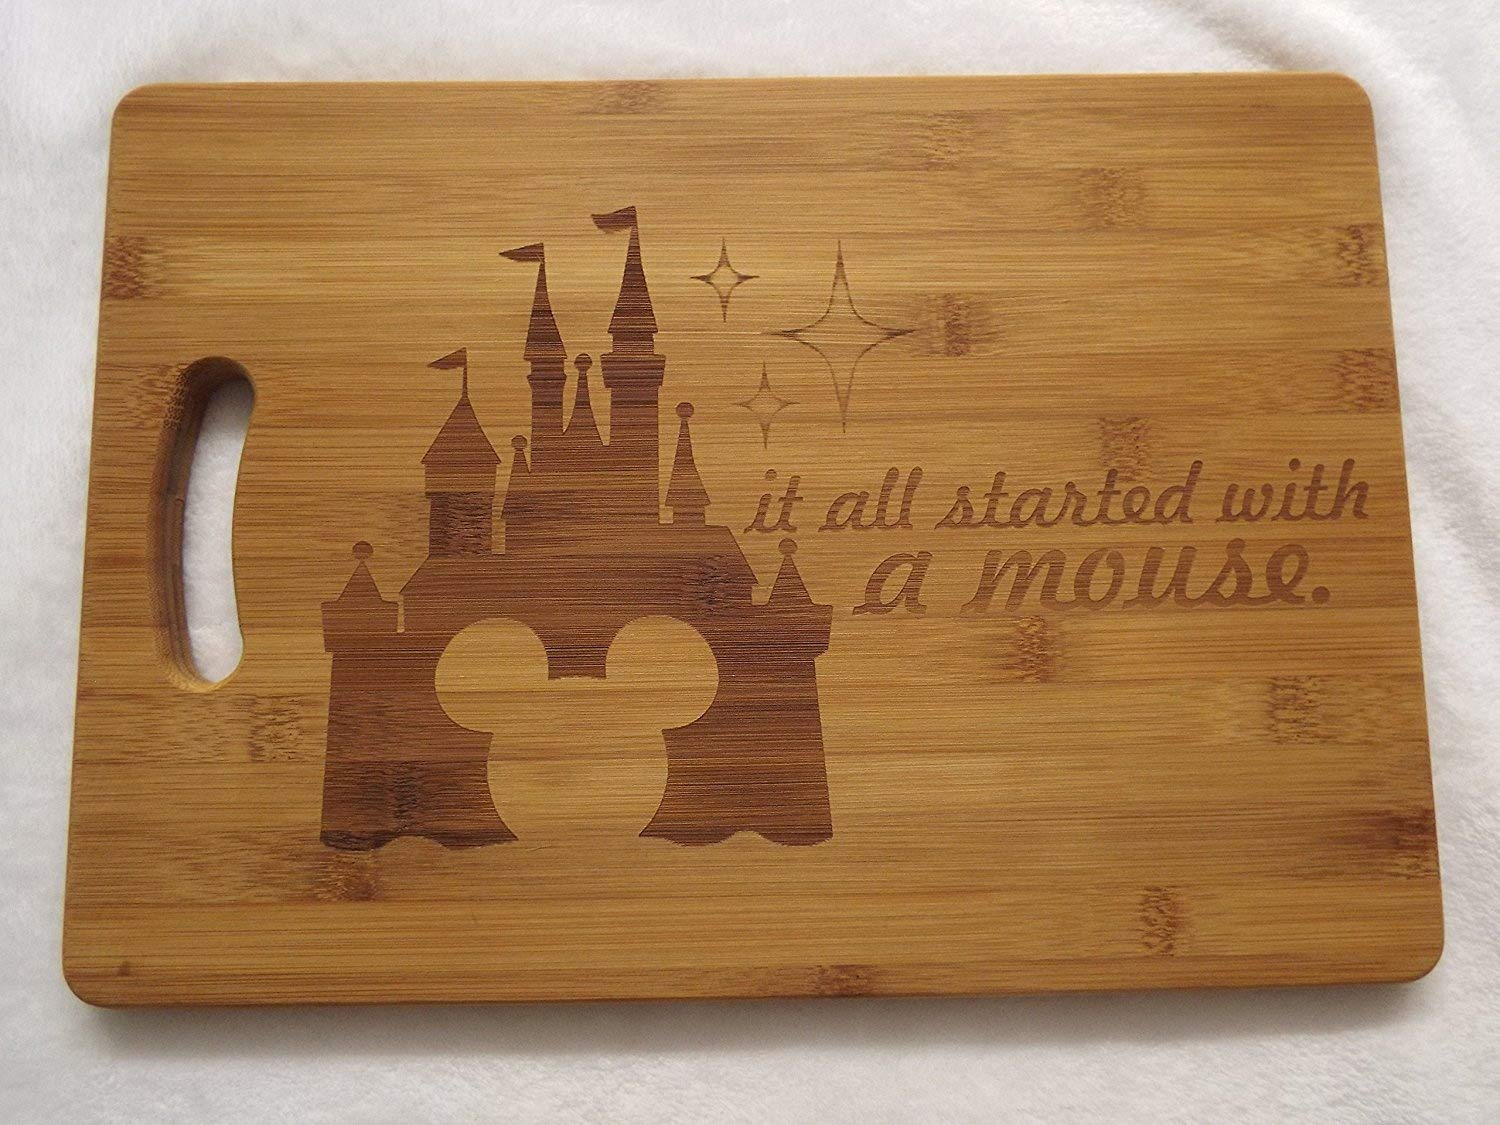 It all started with a mouse disney inspired chopping board Mickey Mouse LBS4ALL